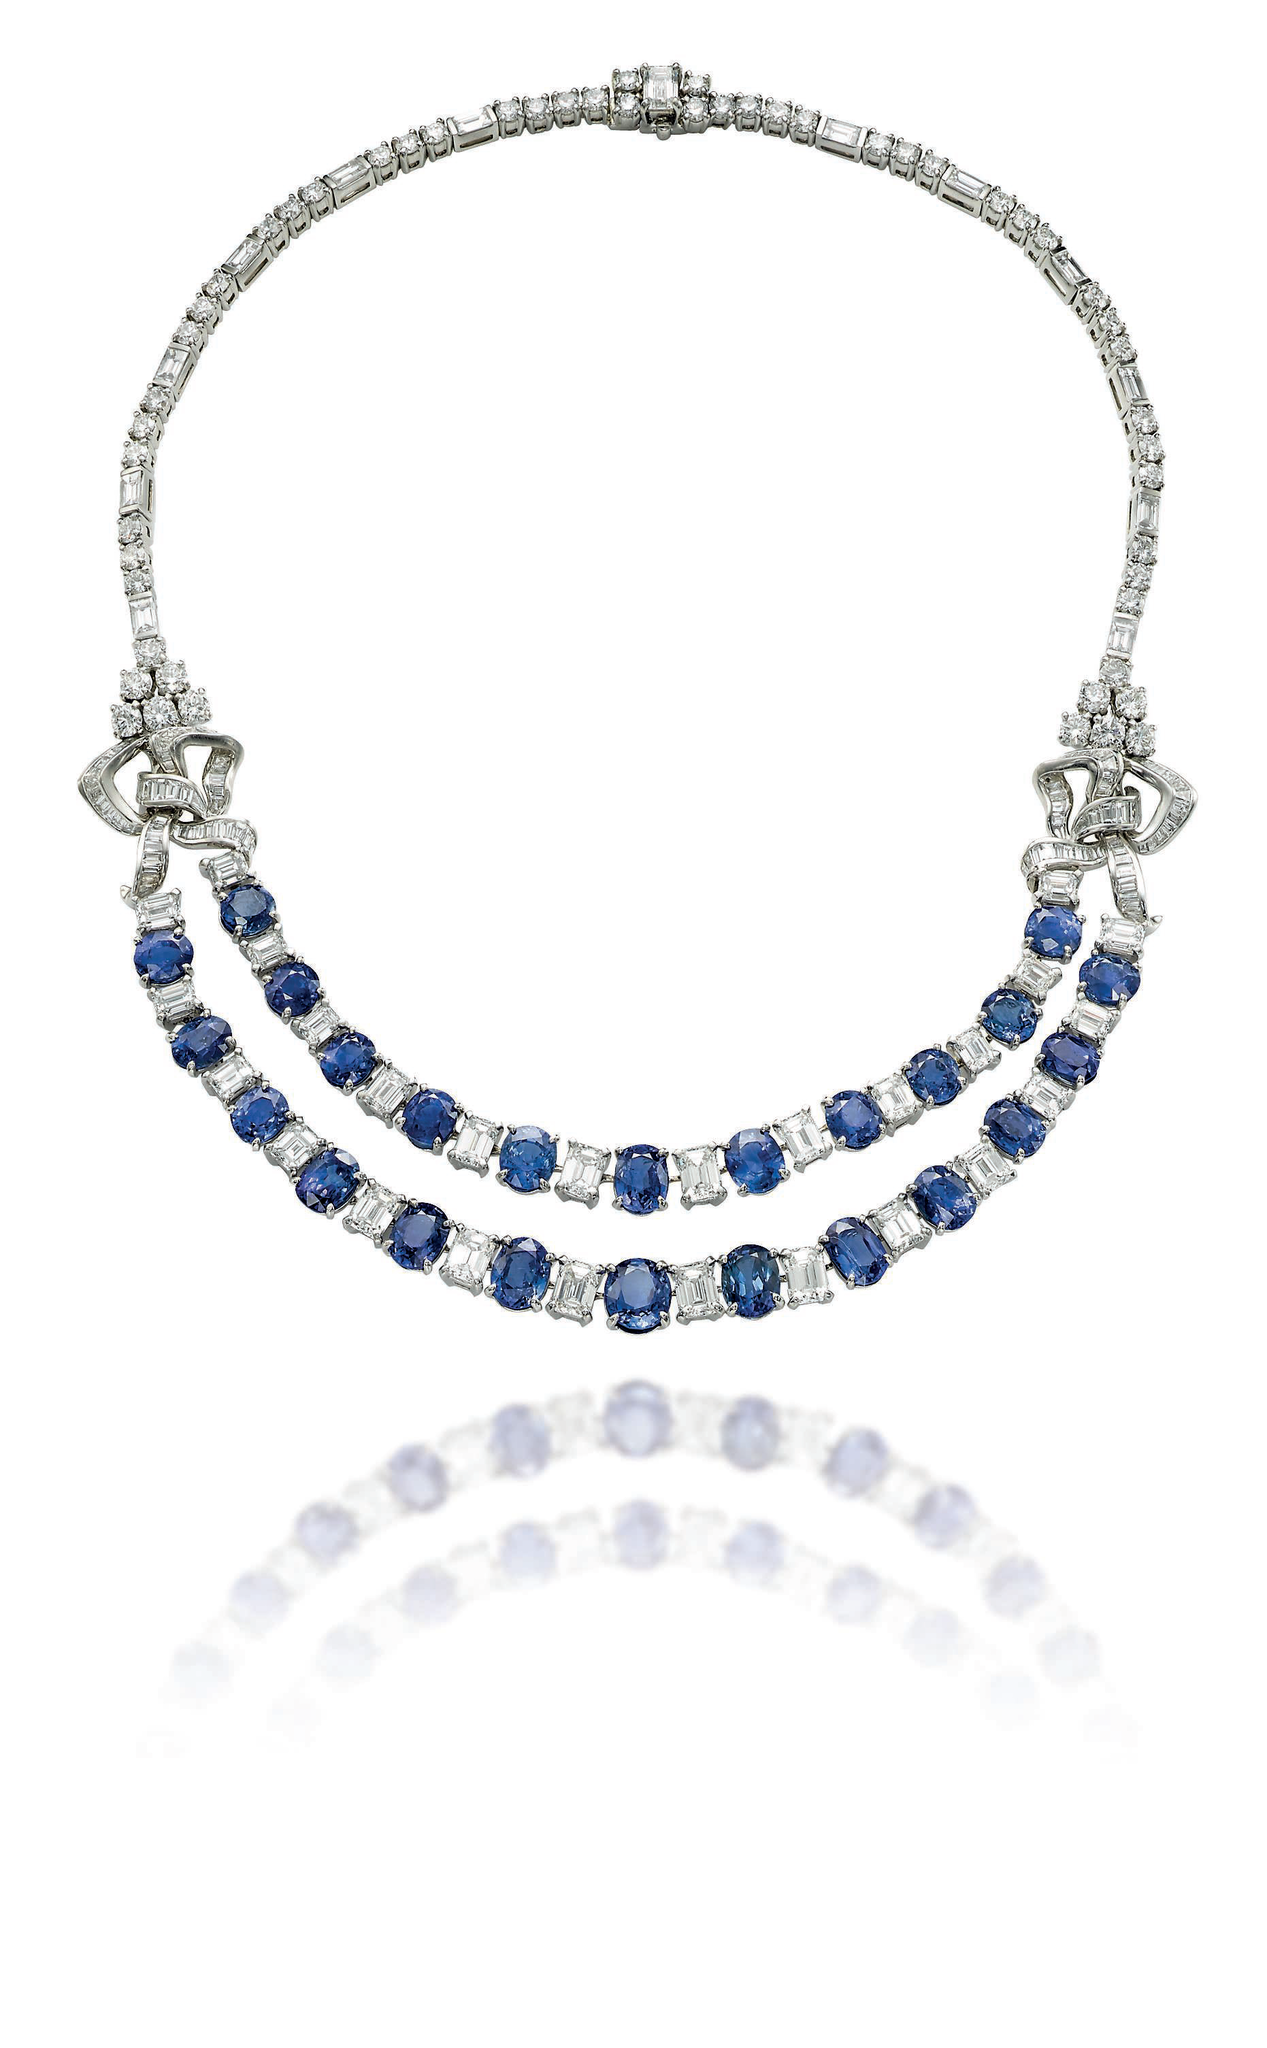 A sapphire and diamond necklace, by Bulgari